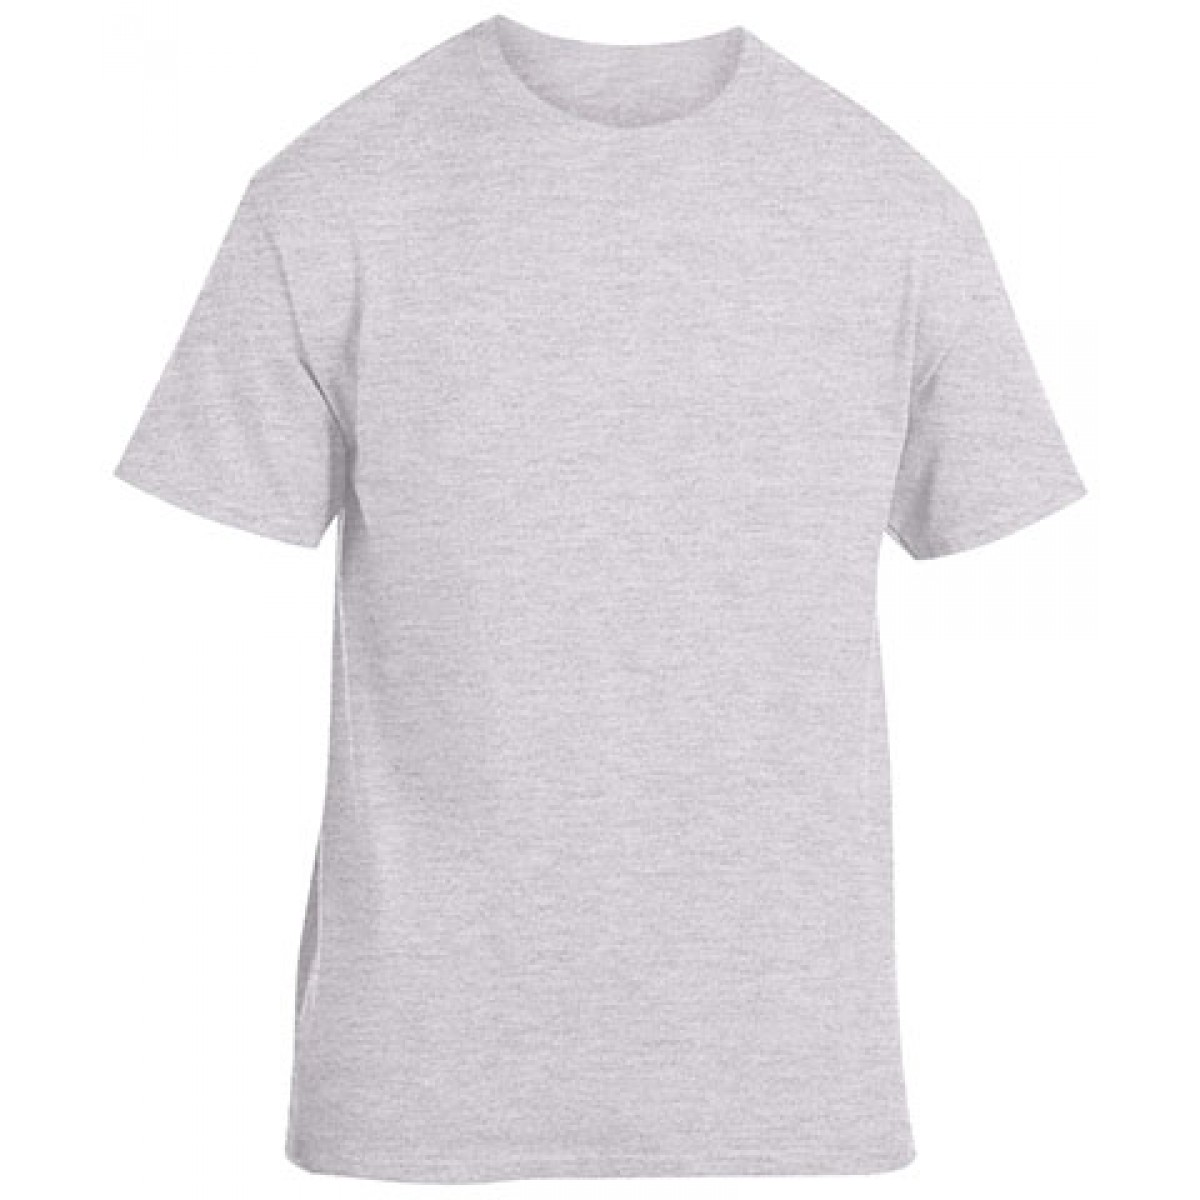 Heavy Cotton Activewear T-Shirt-Sports Grey-S